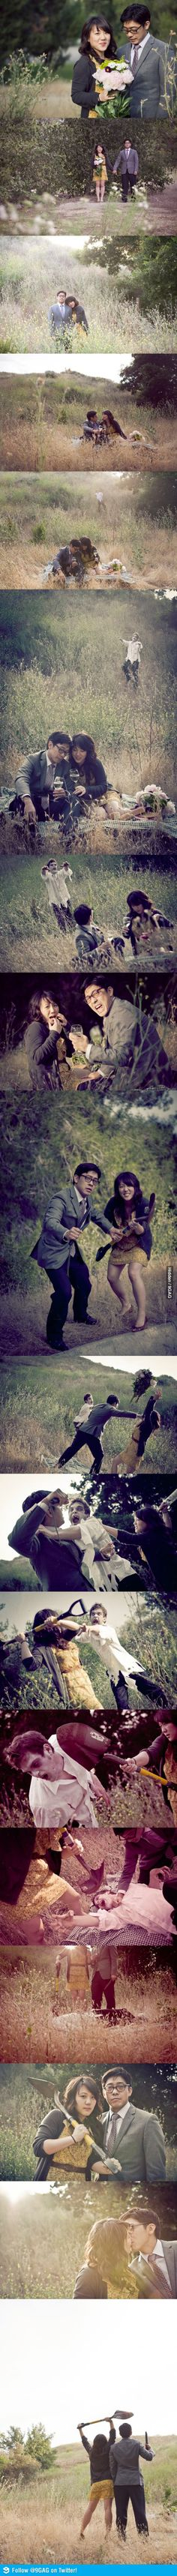 Bwahahaha...you think your engagement photos are funny?